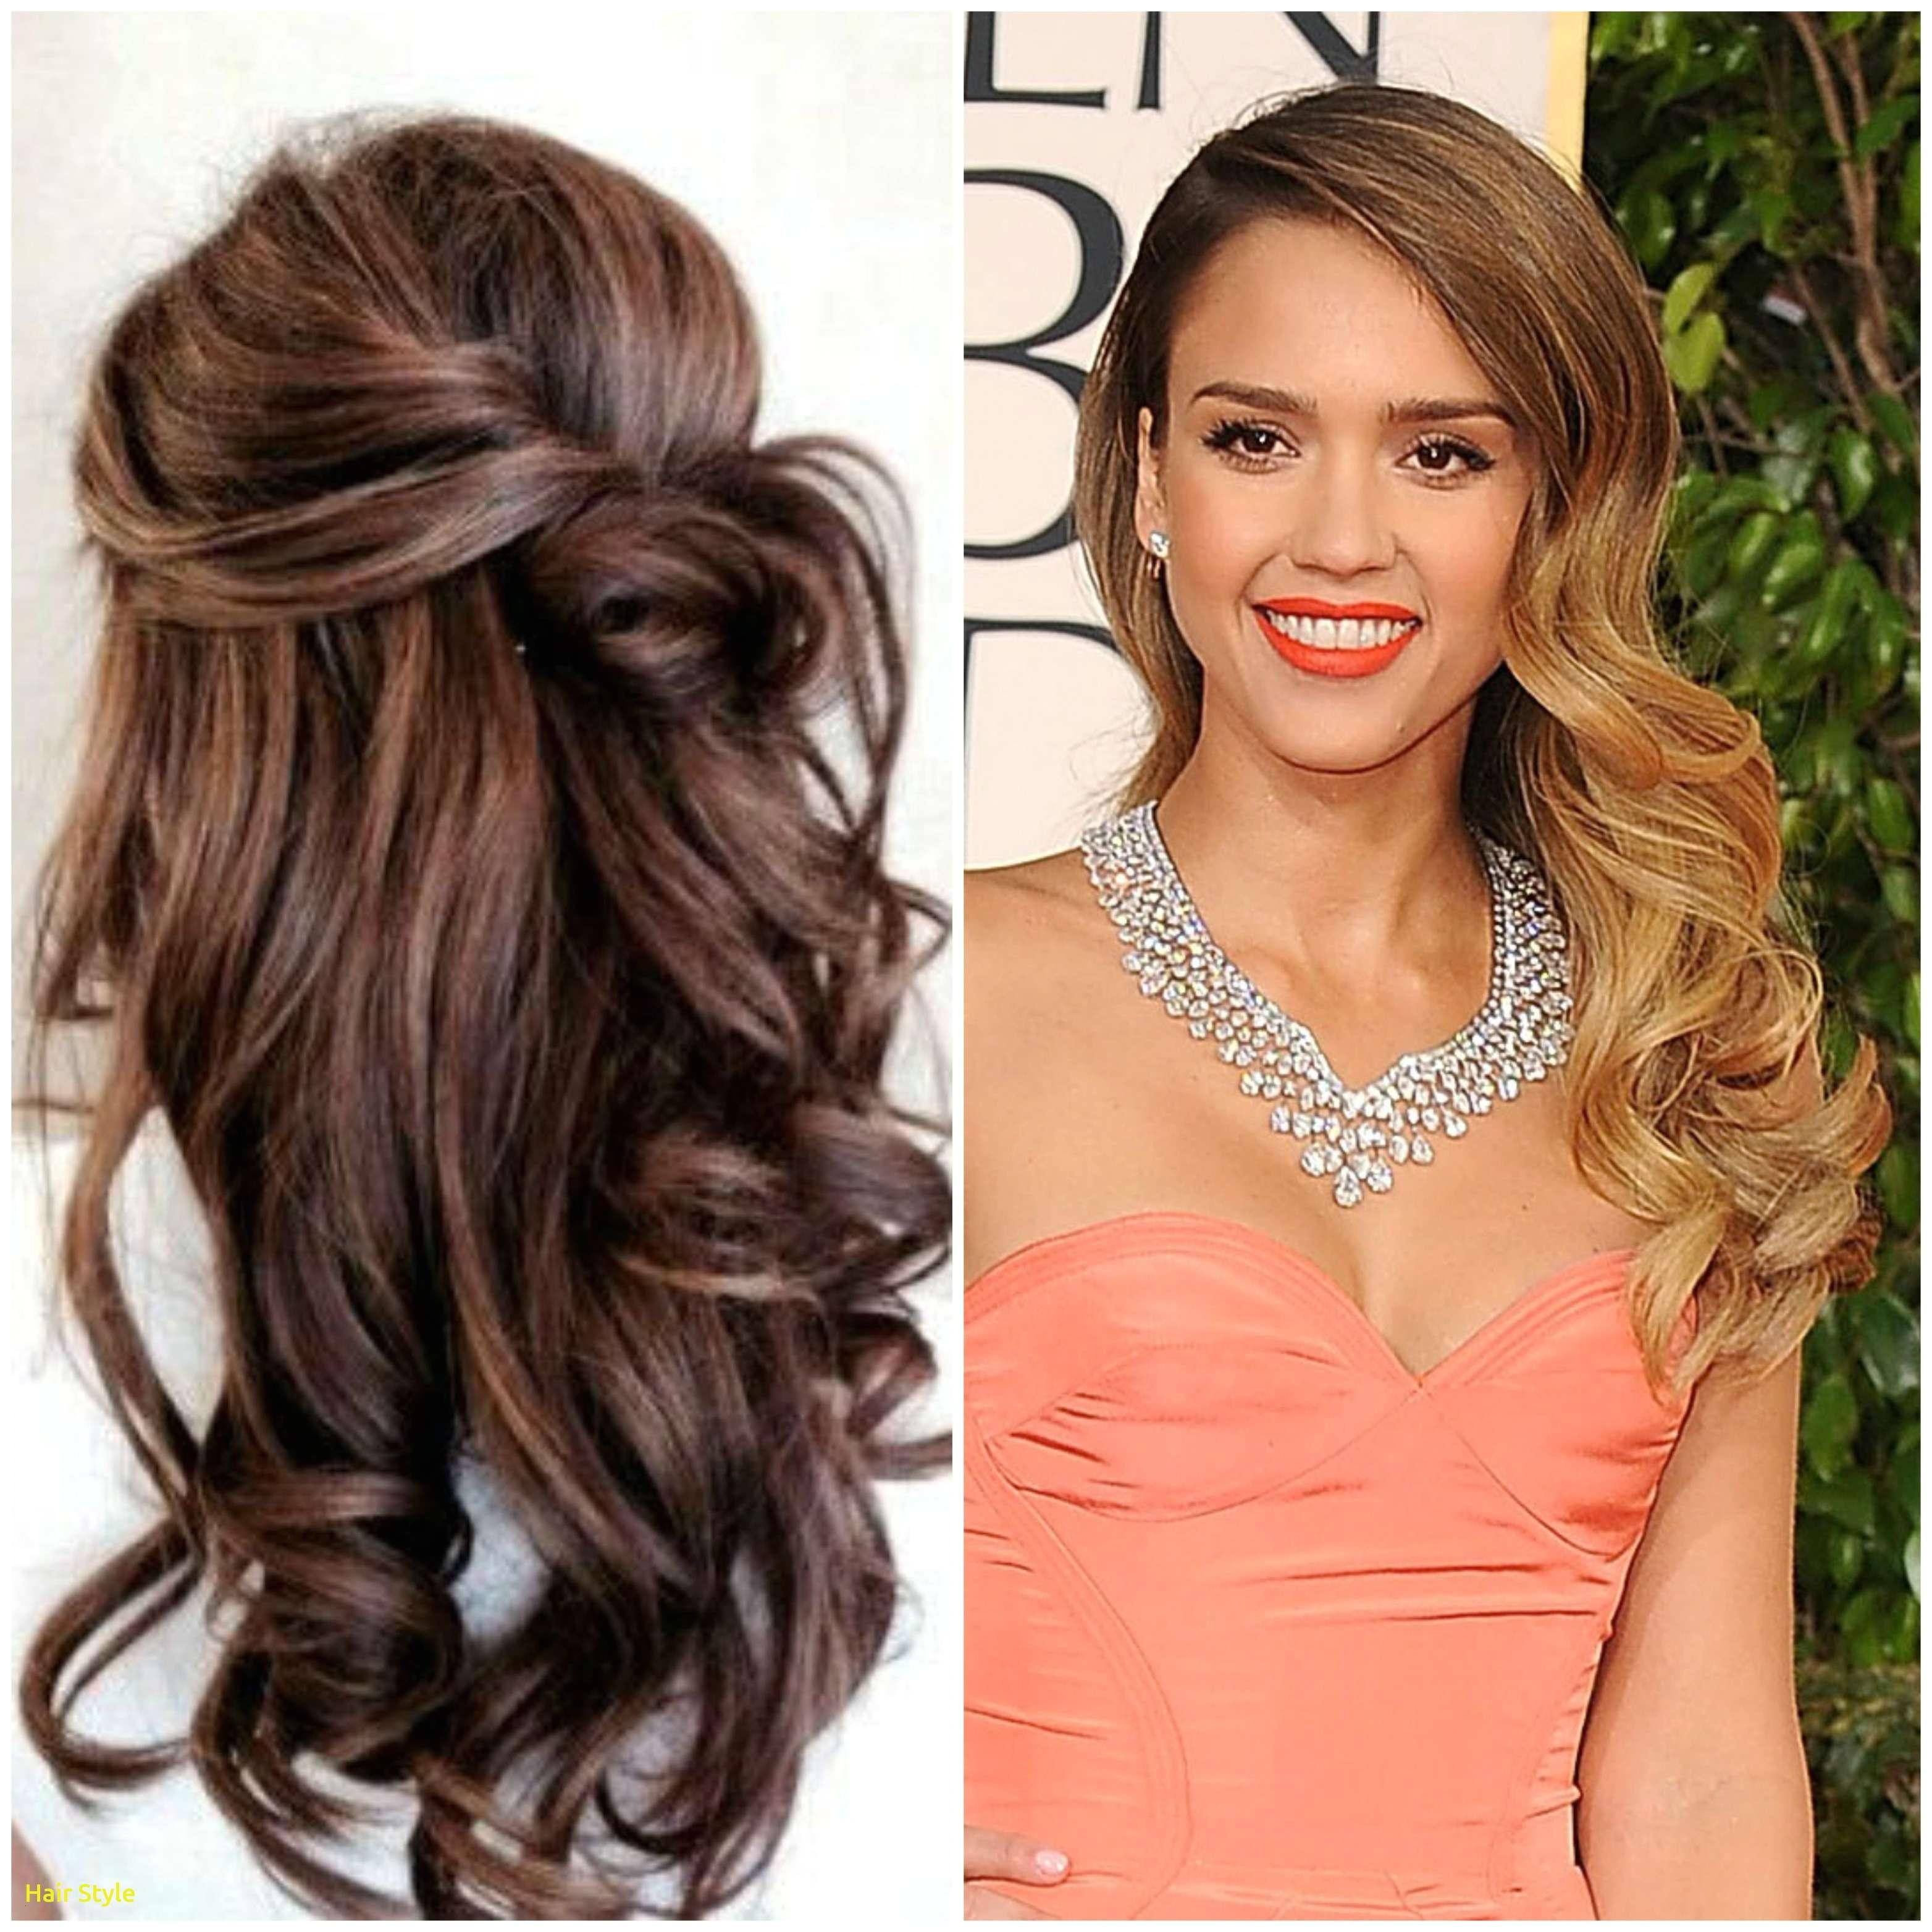 Hairstyle for Girls In Party Cool Hairstyles for Girls Beautiful Cool Easy Hairstyles for A Party